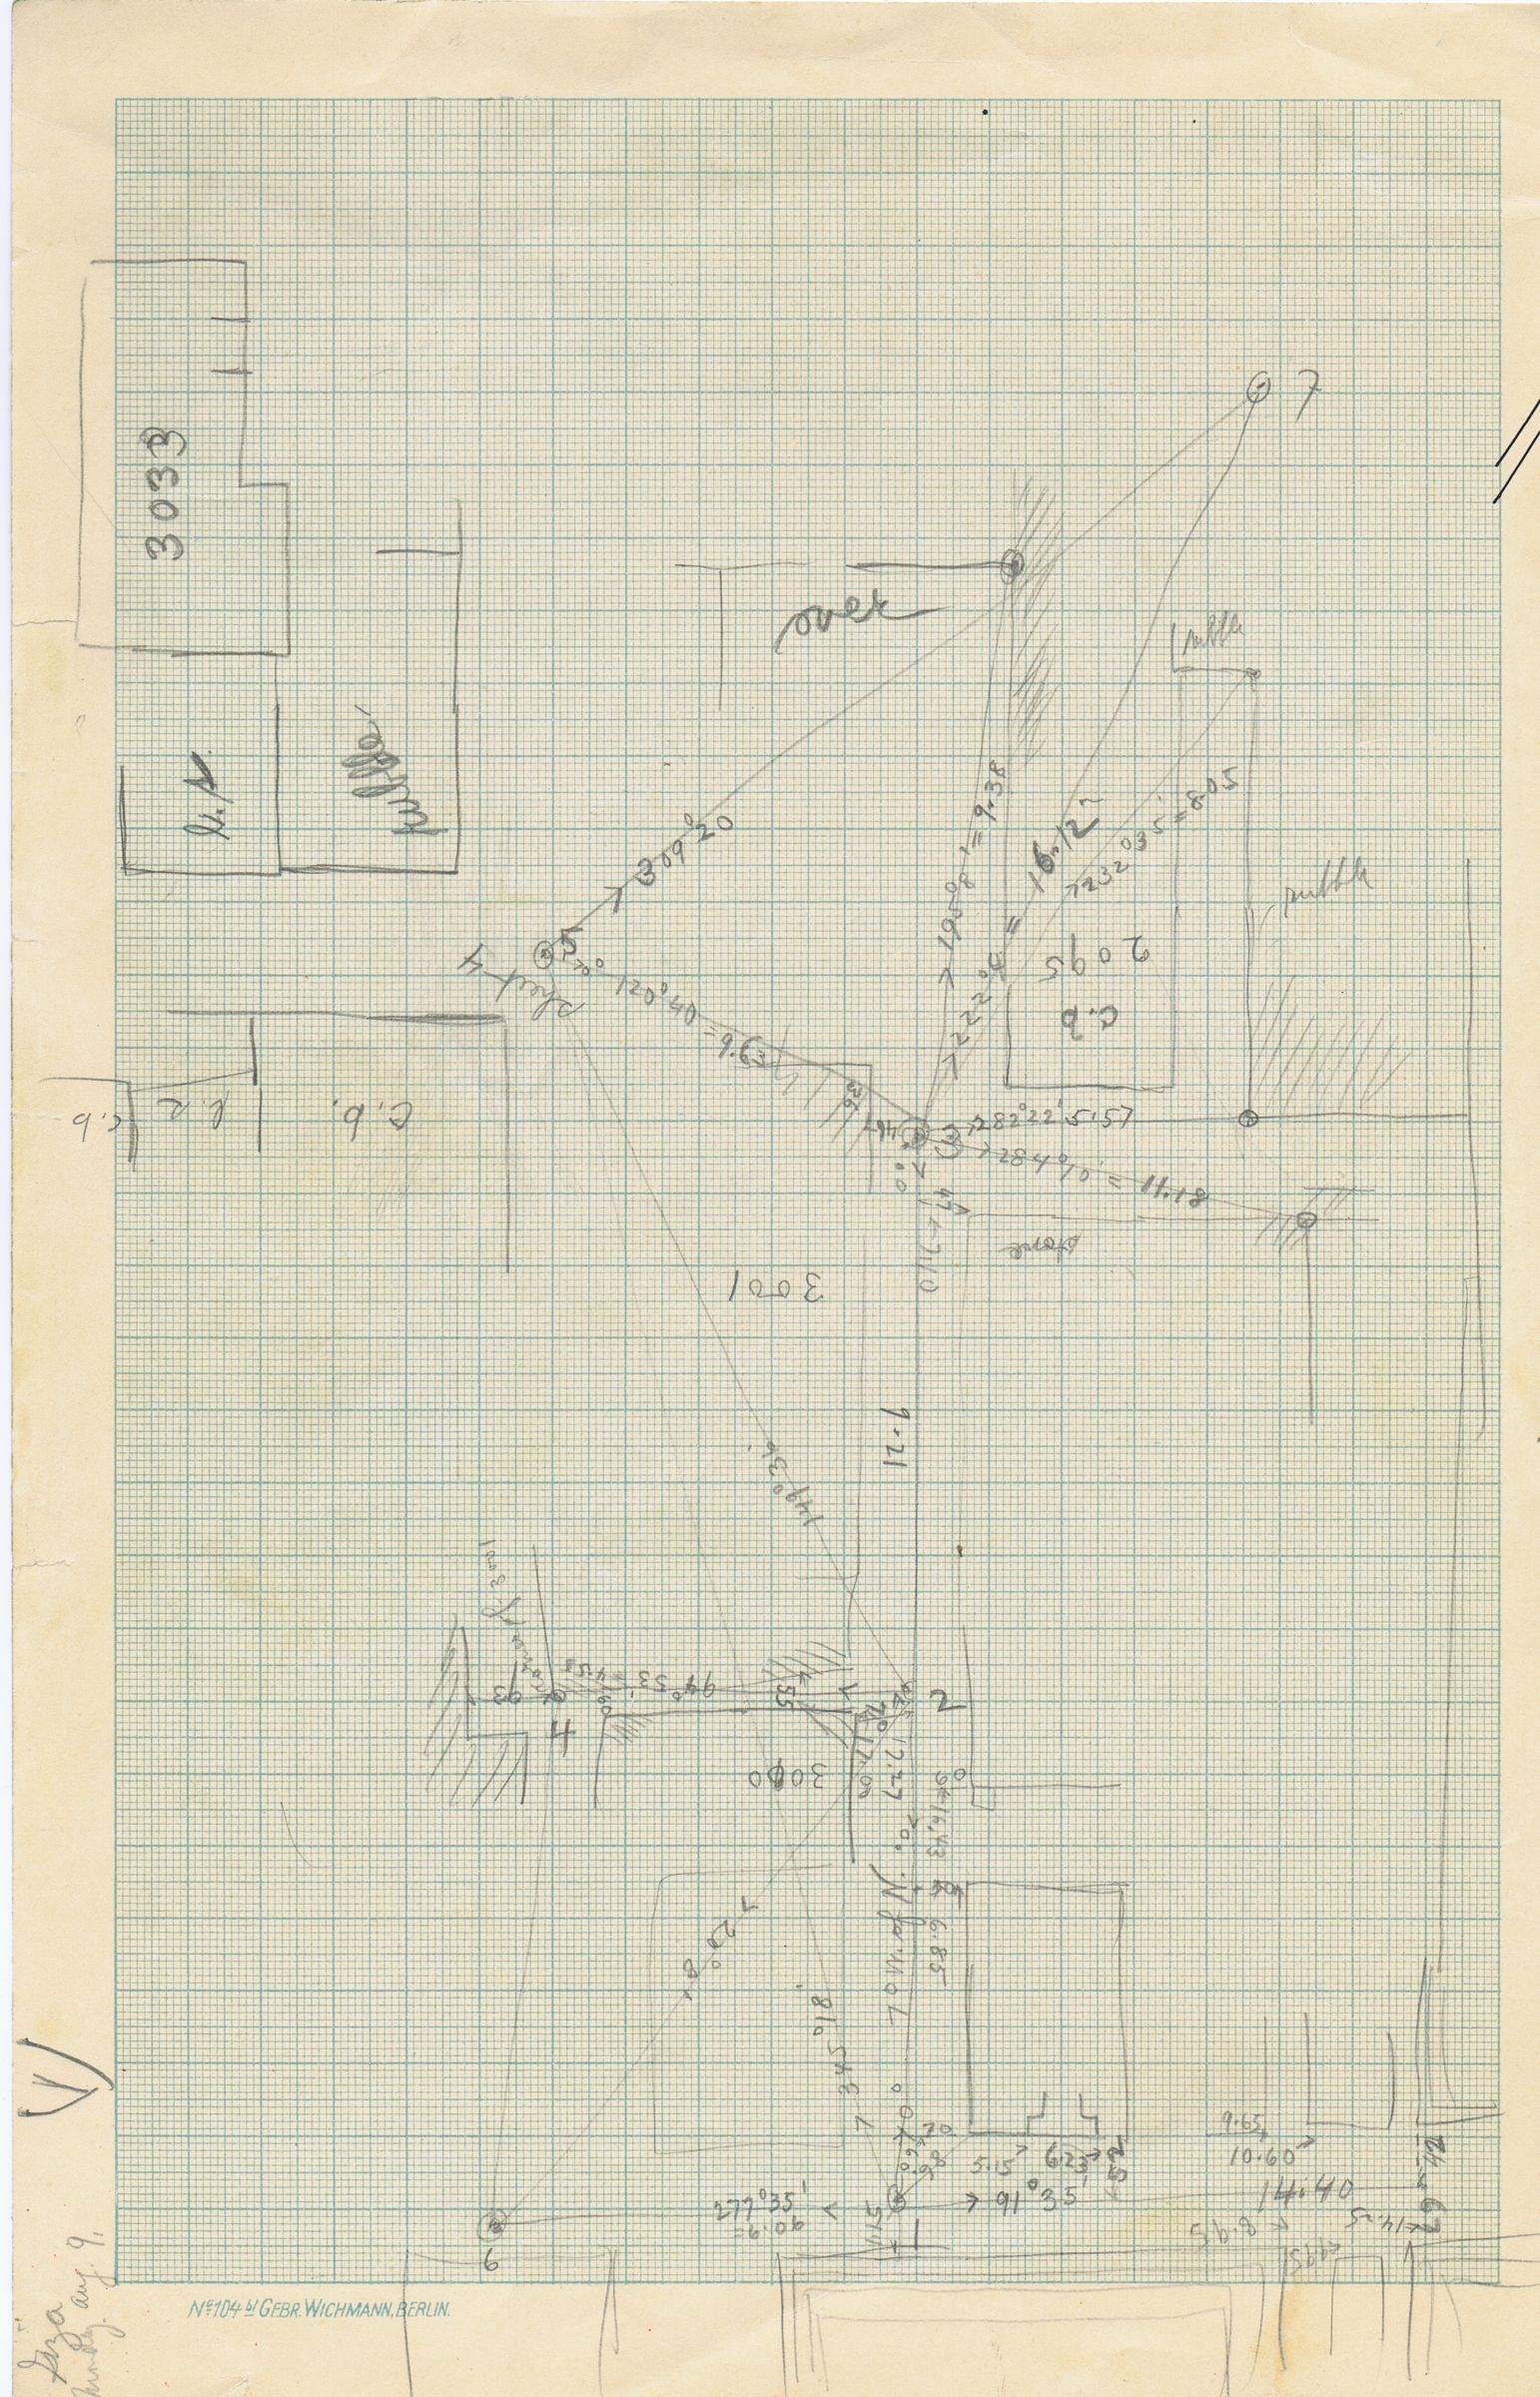 Maps and plans: Sketch plans of G 3000, G 3001, G 3095, and G 3033